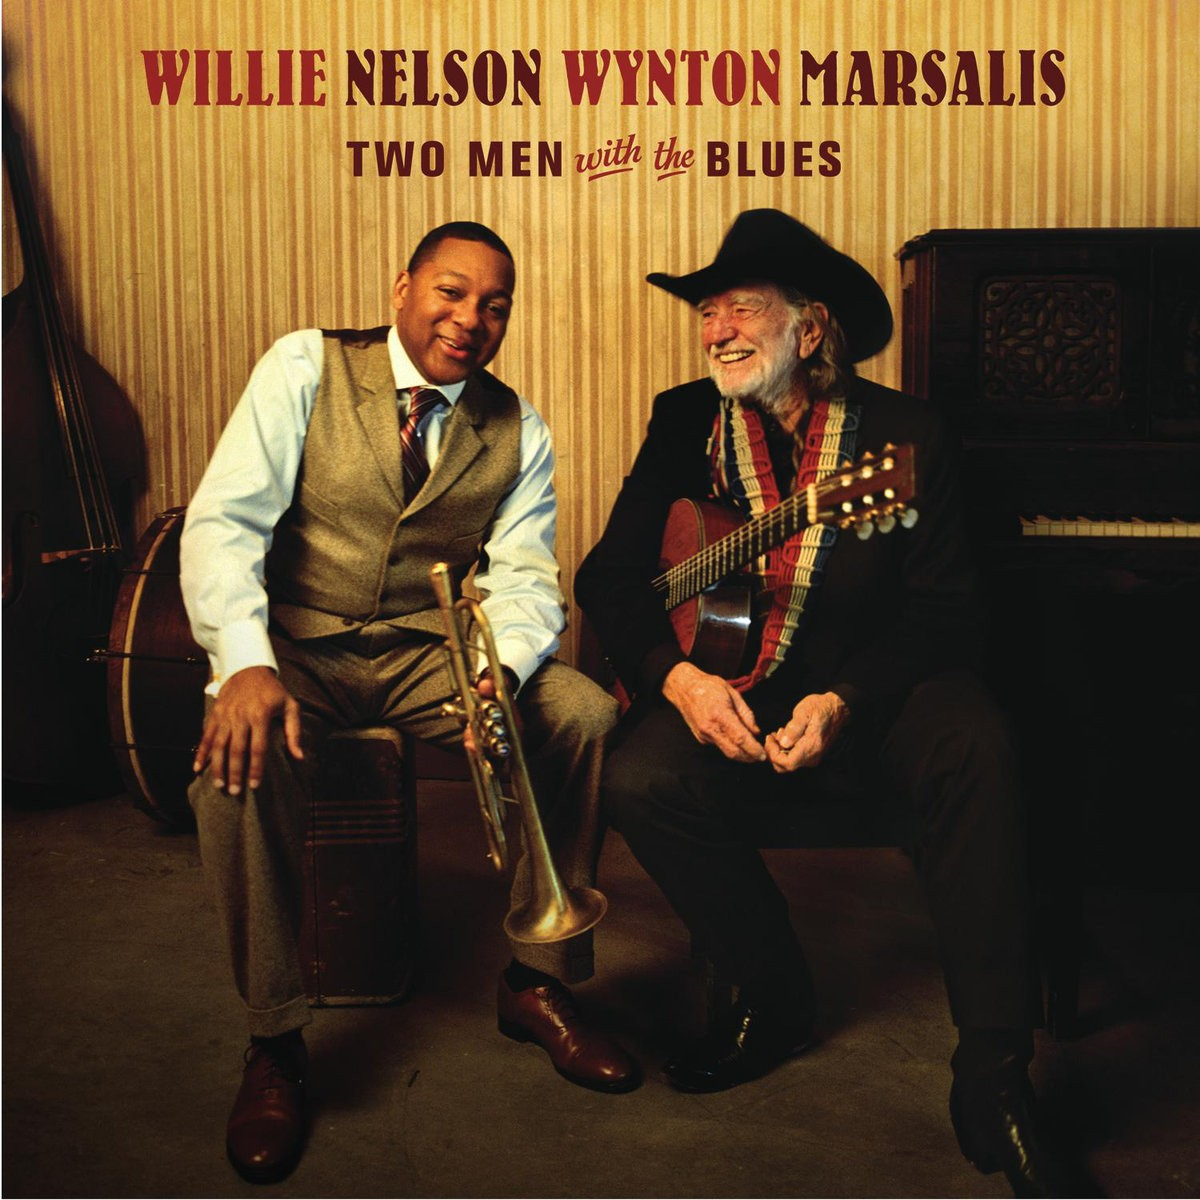 Willie Nelson & Wynton Marsalis - Two Men With The Blues VINYL - 50999 5044541